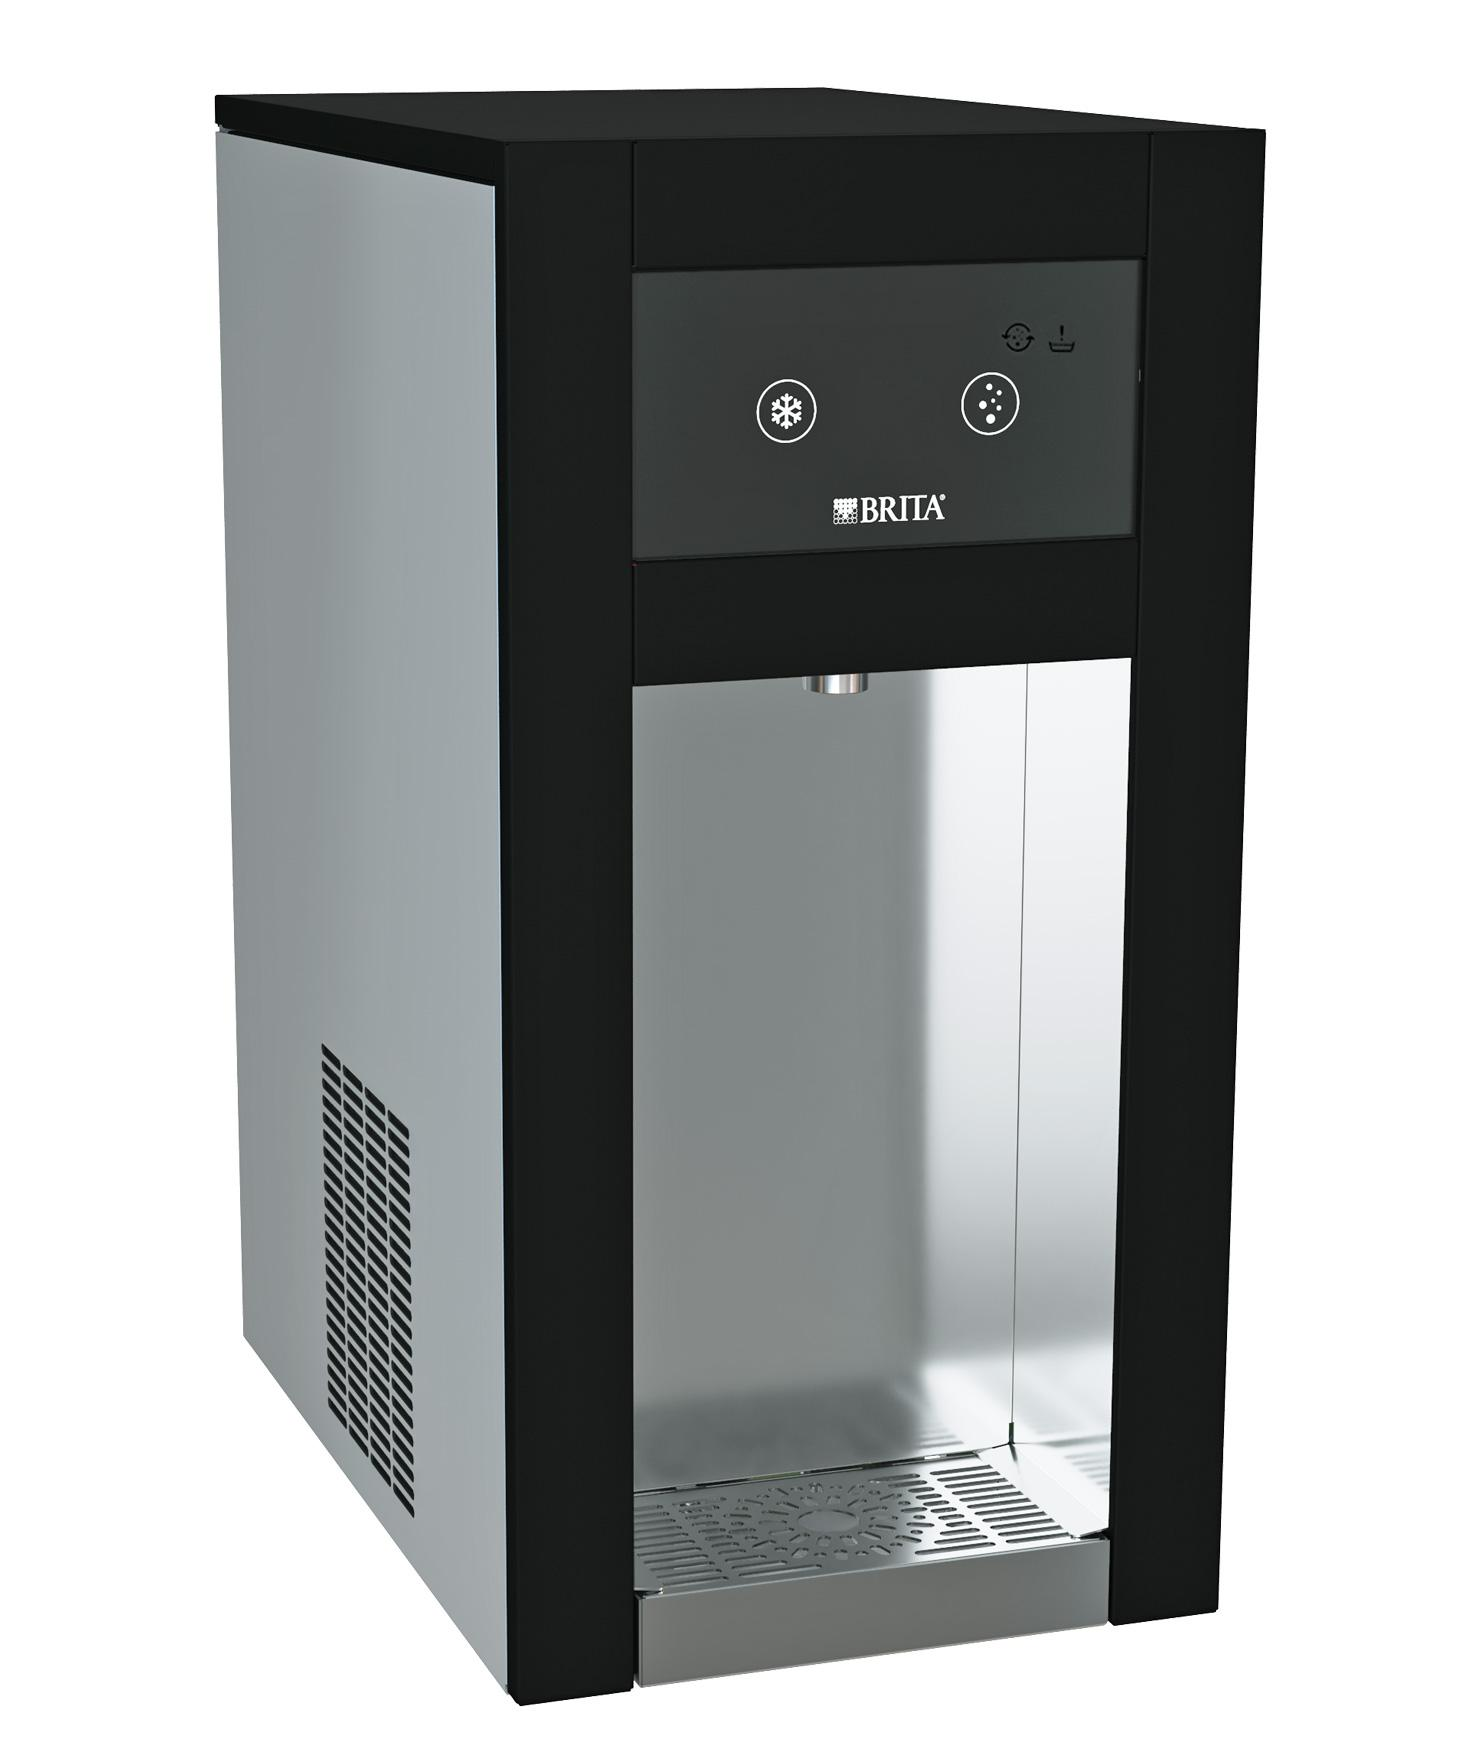 brita vivreau sodamaster 50 dispenser brita. Black Bedroom Furniture Sets. Home Design Ideas